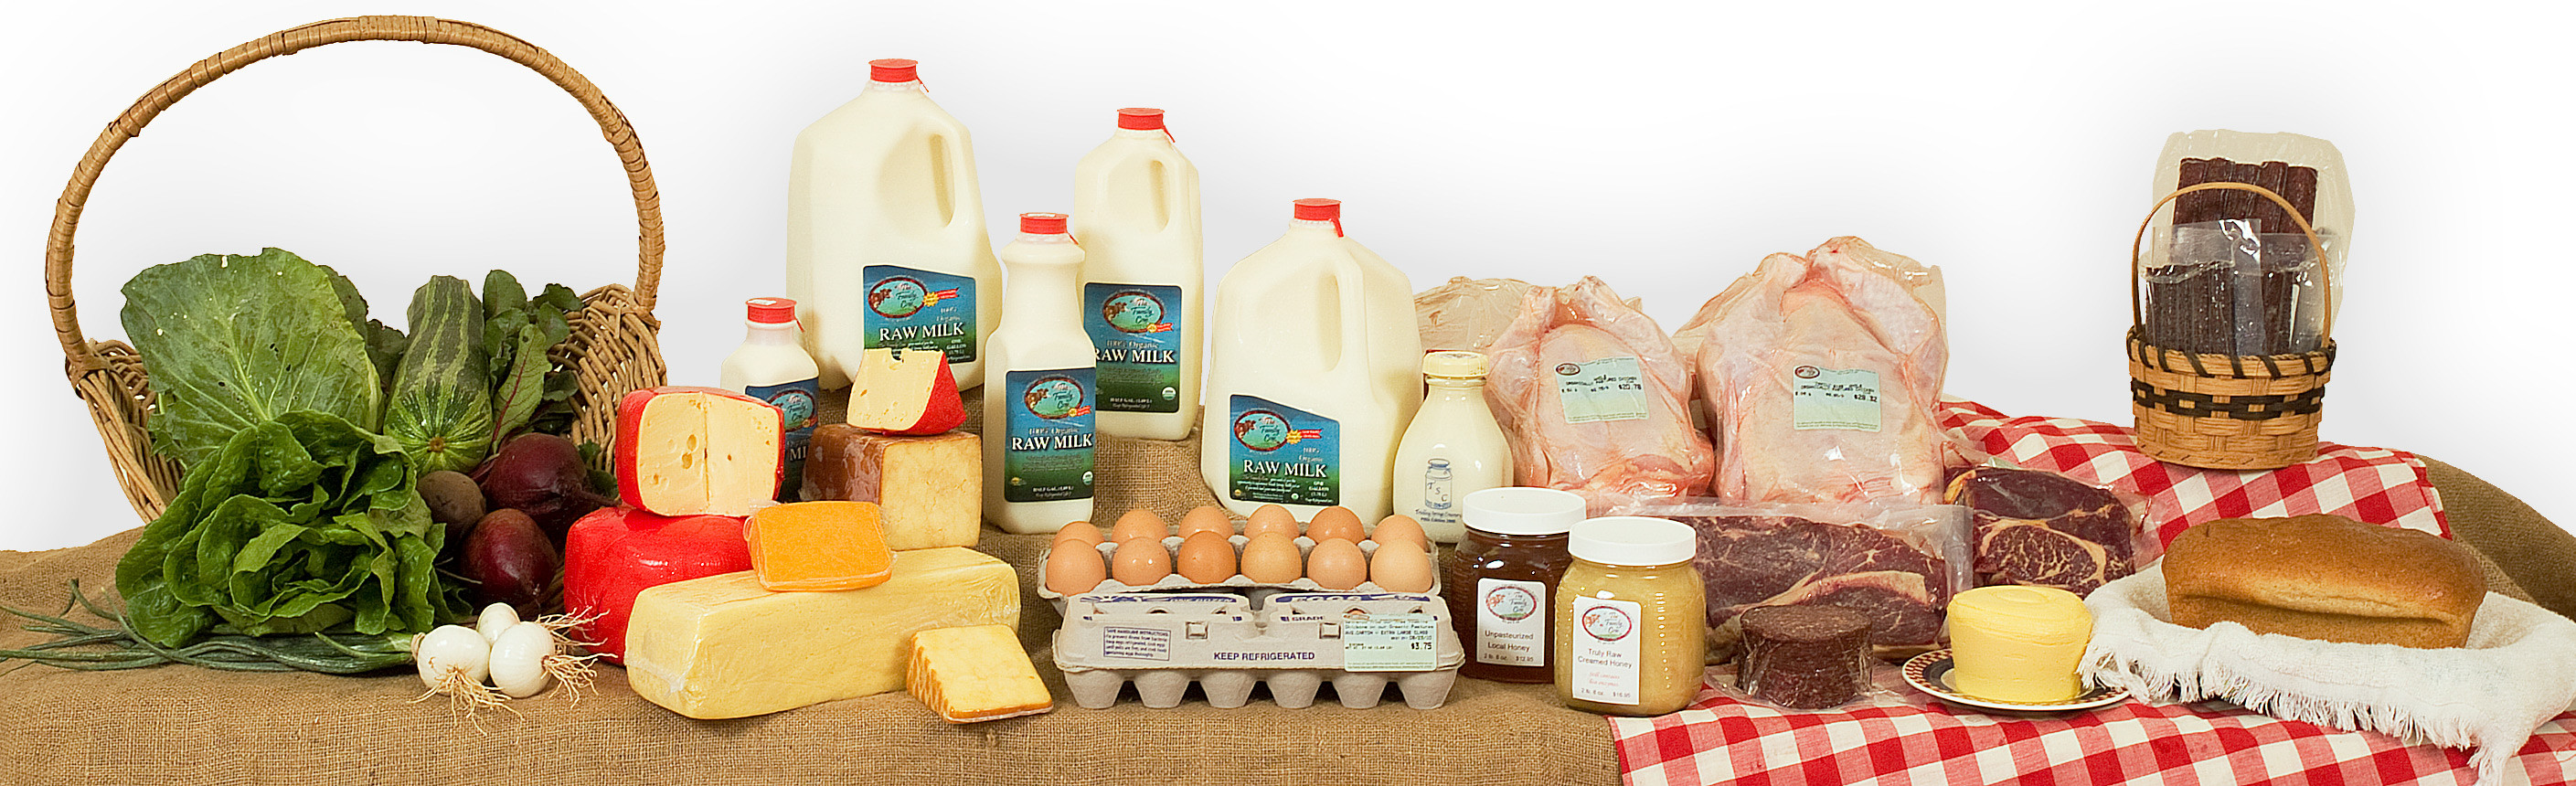 The Family Cow organically grown natural foods available for home delivery